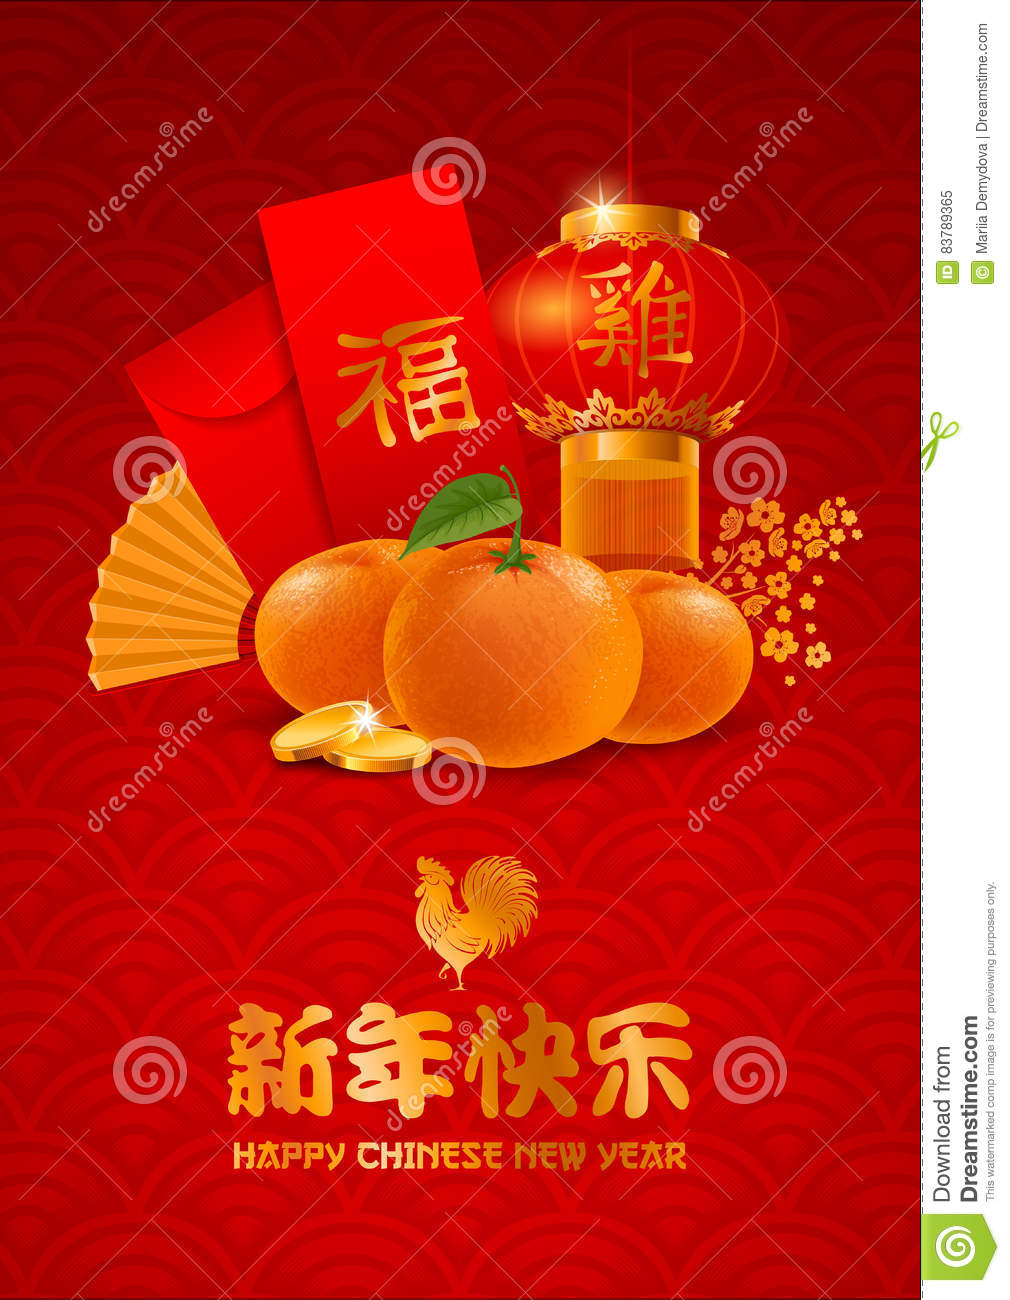 Chinese New Year Greeting Stock Vector Illustration Of Design